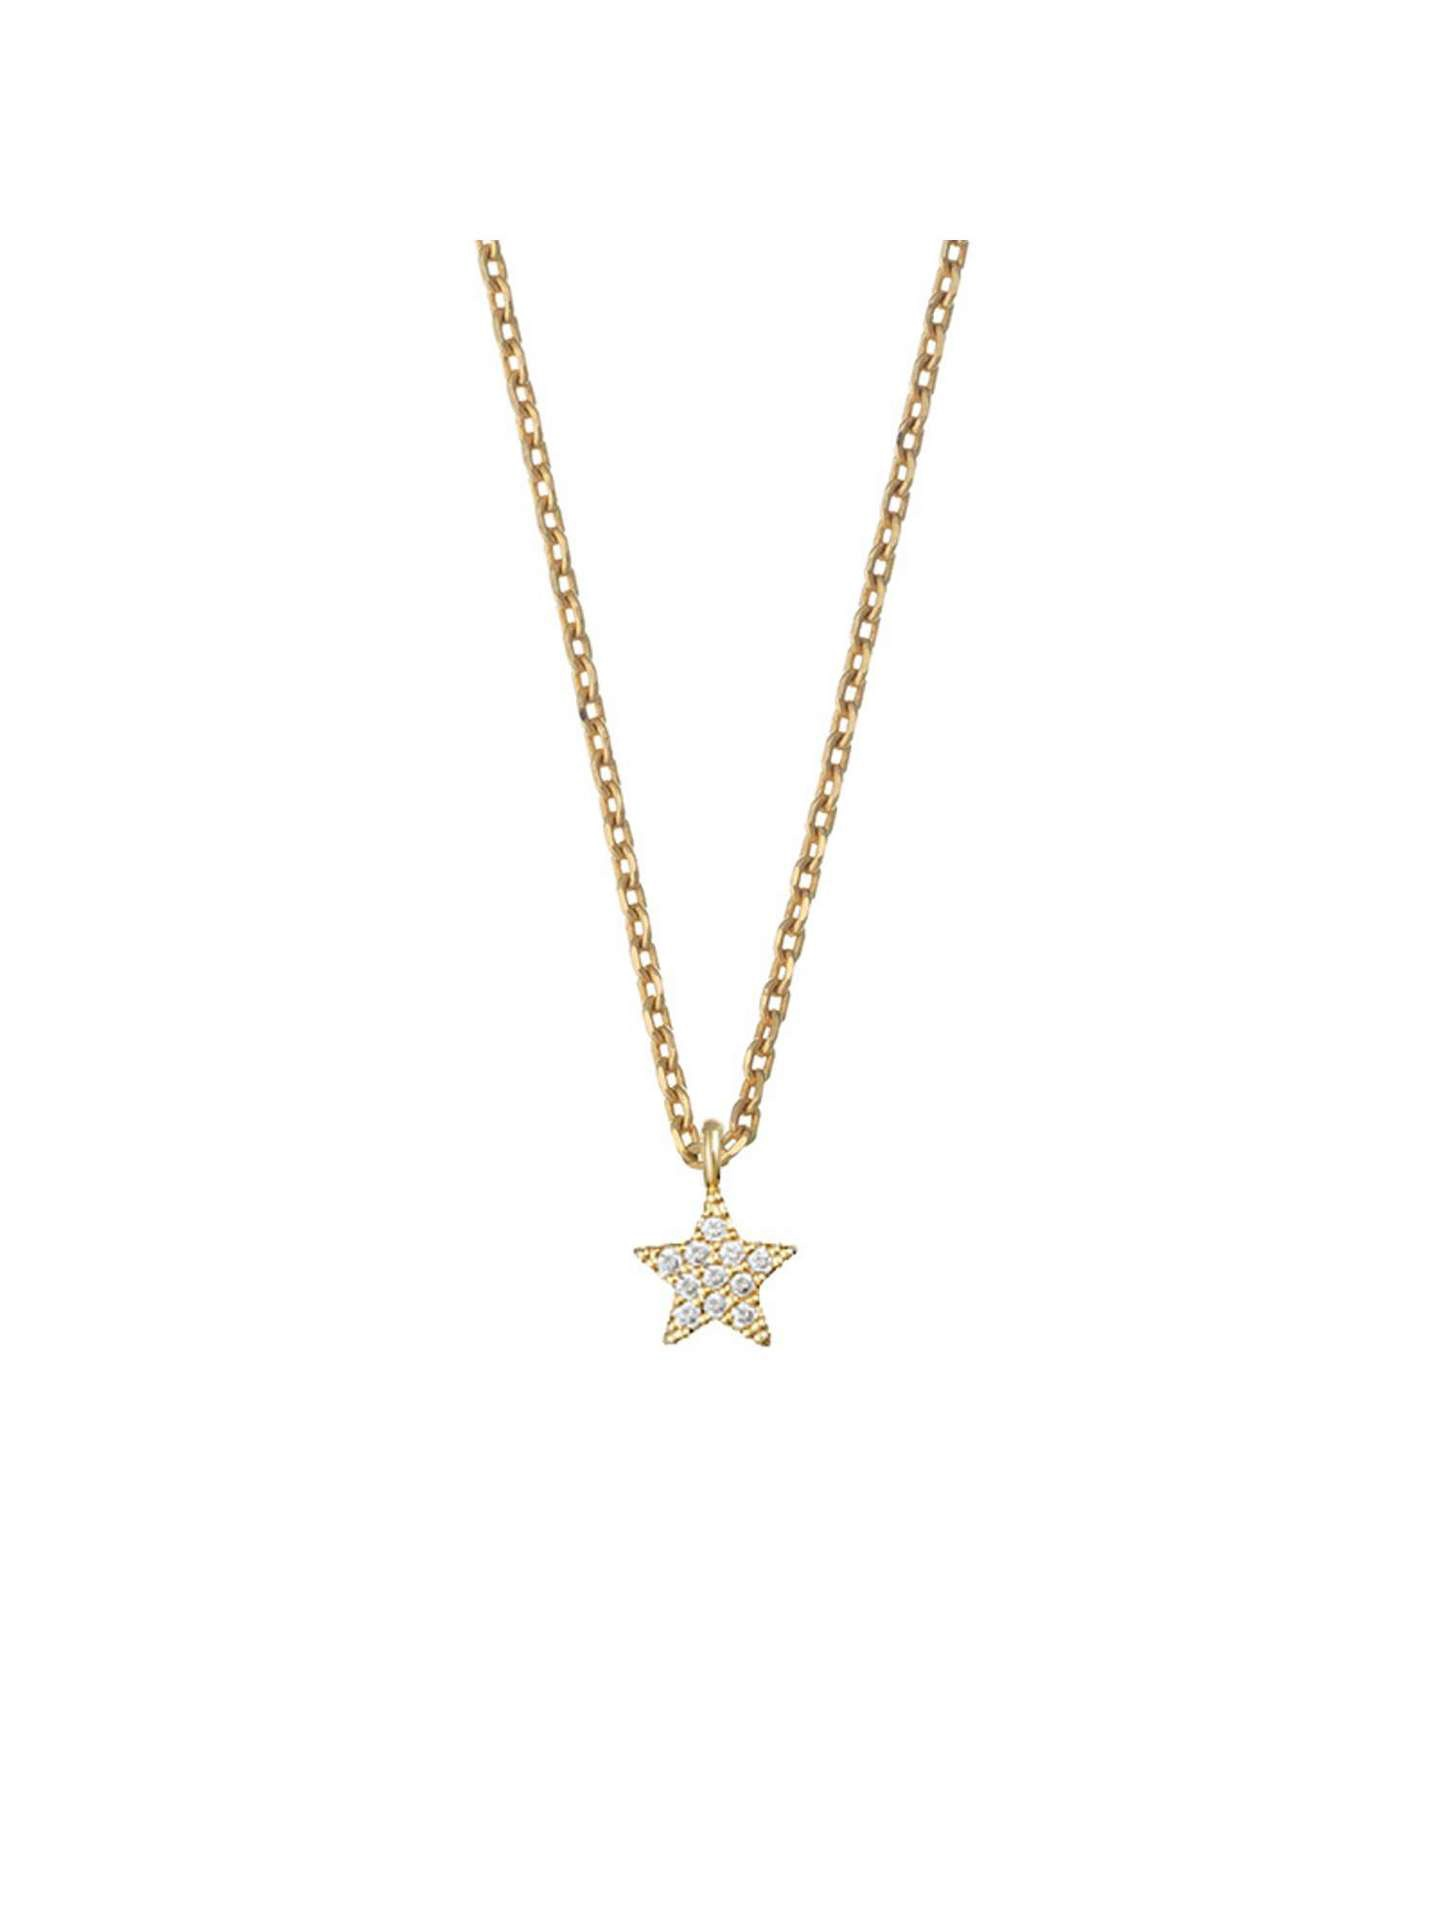 Estella Bartlett Merci Necklace